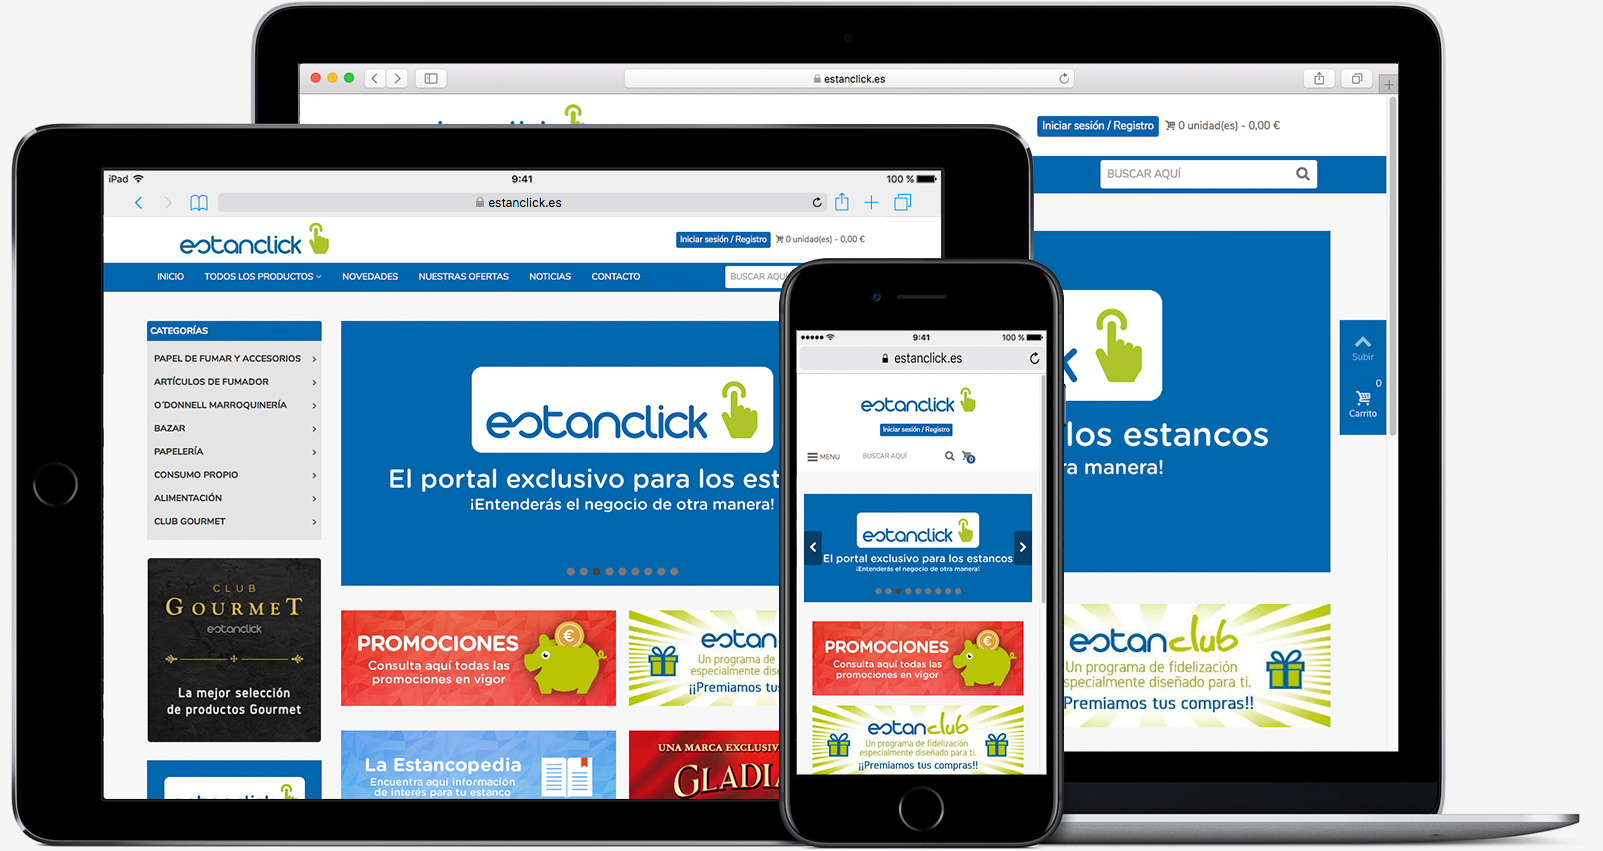 dispositivos con pagina de estanclick